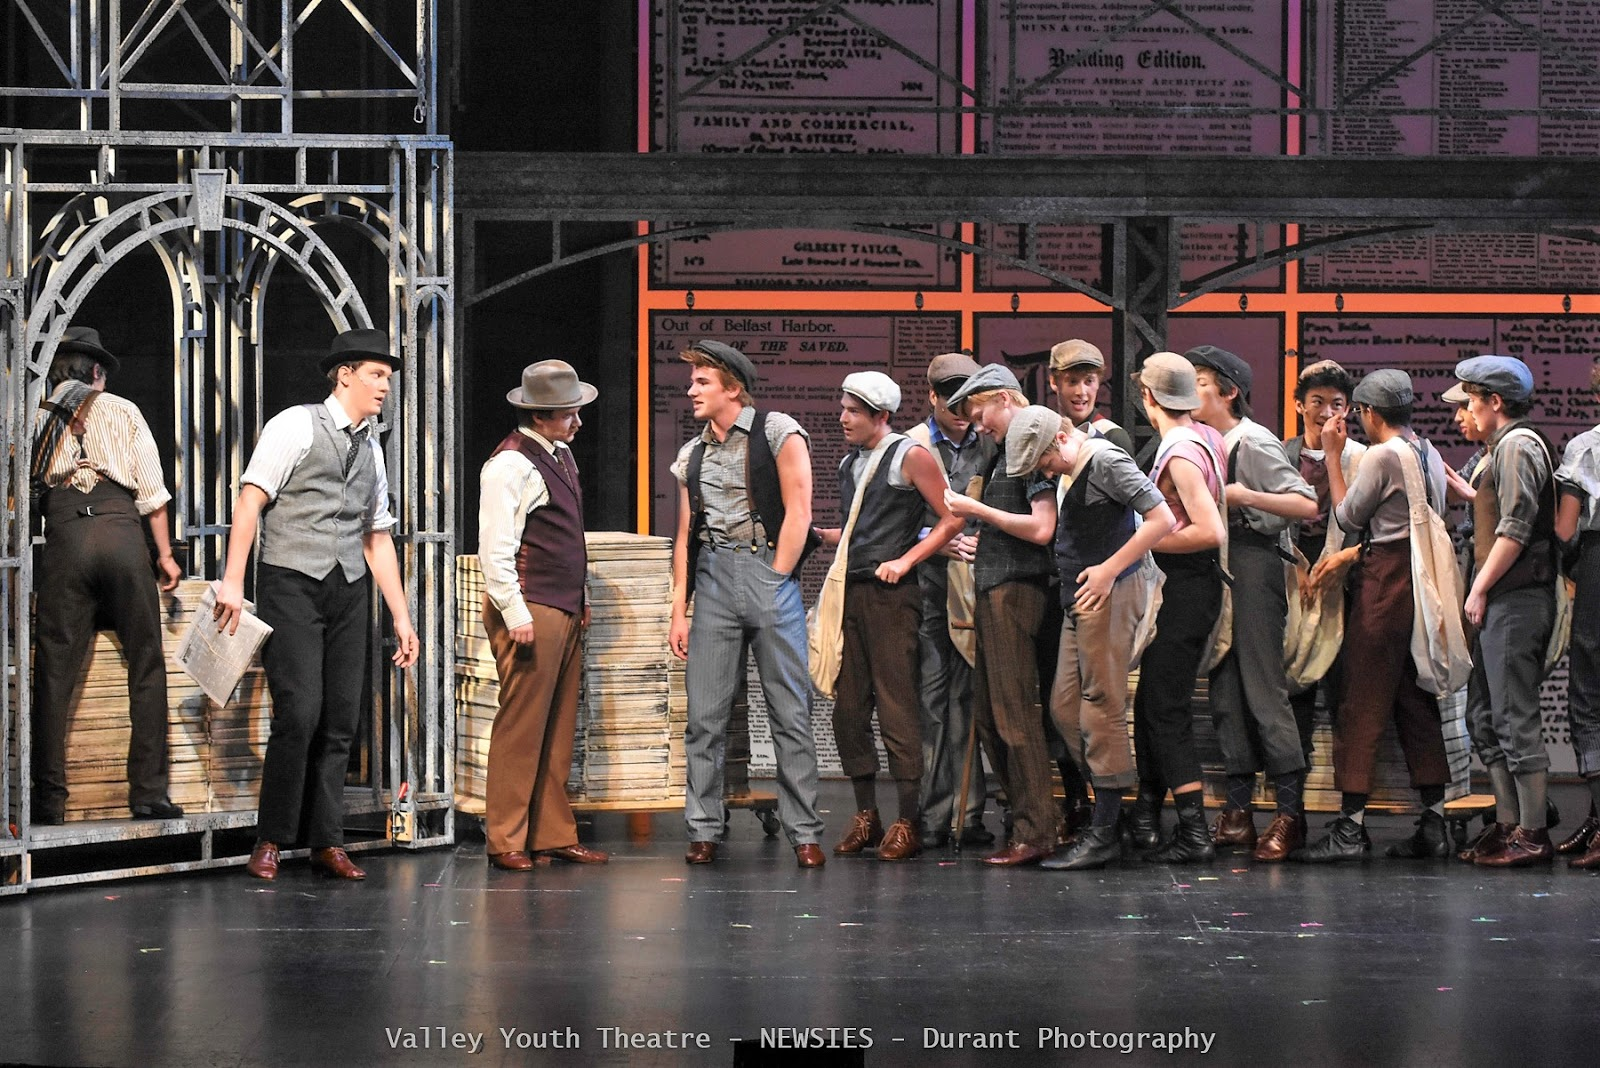 VYT-Newsies-selections-2.jpg